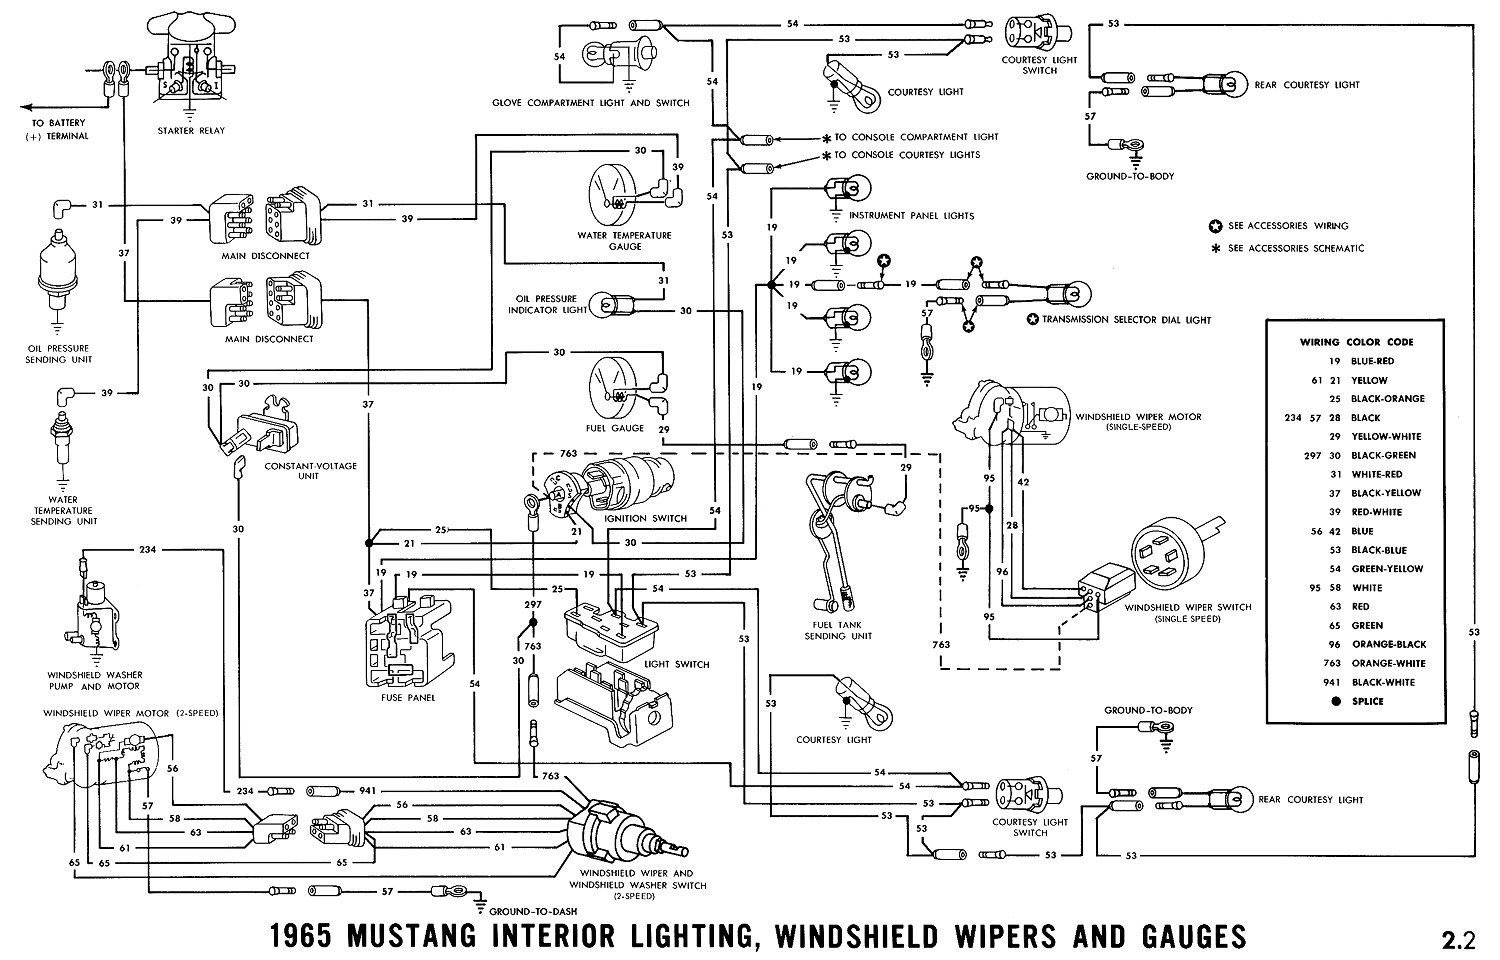 1965 Cadillac Wiring Diagram Reinvent Your Fuse Box For Deville 1968 Dash Detailed Schematics Rh Lelandlutheran Com